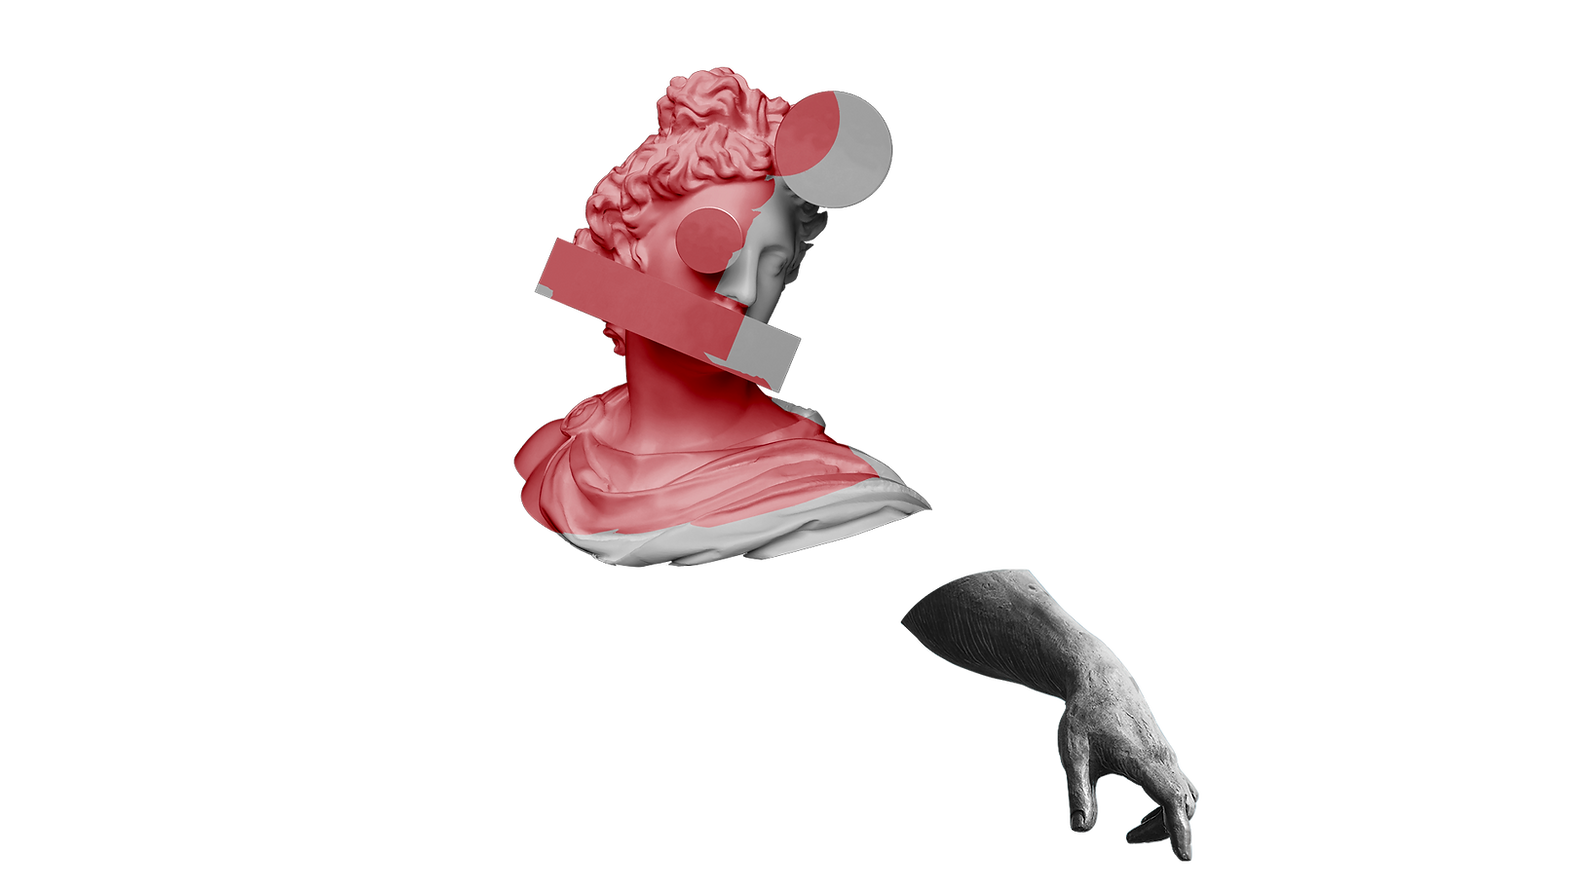 statue2.png